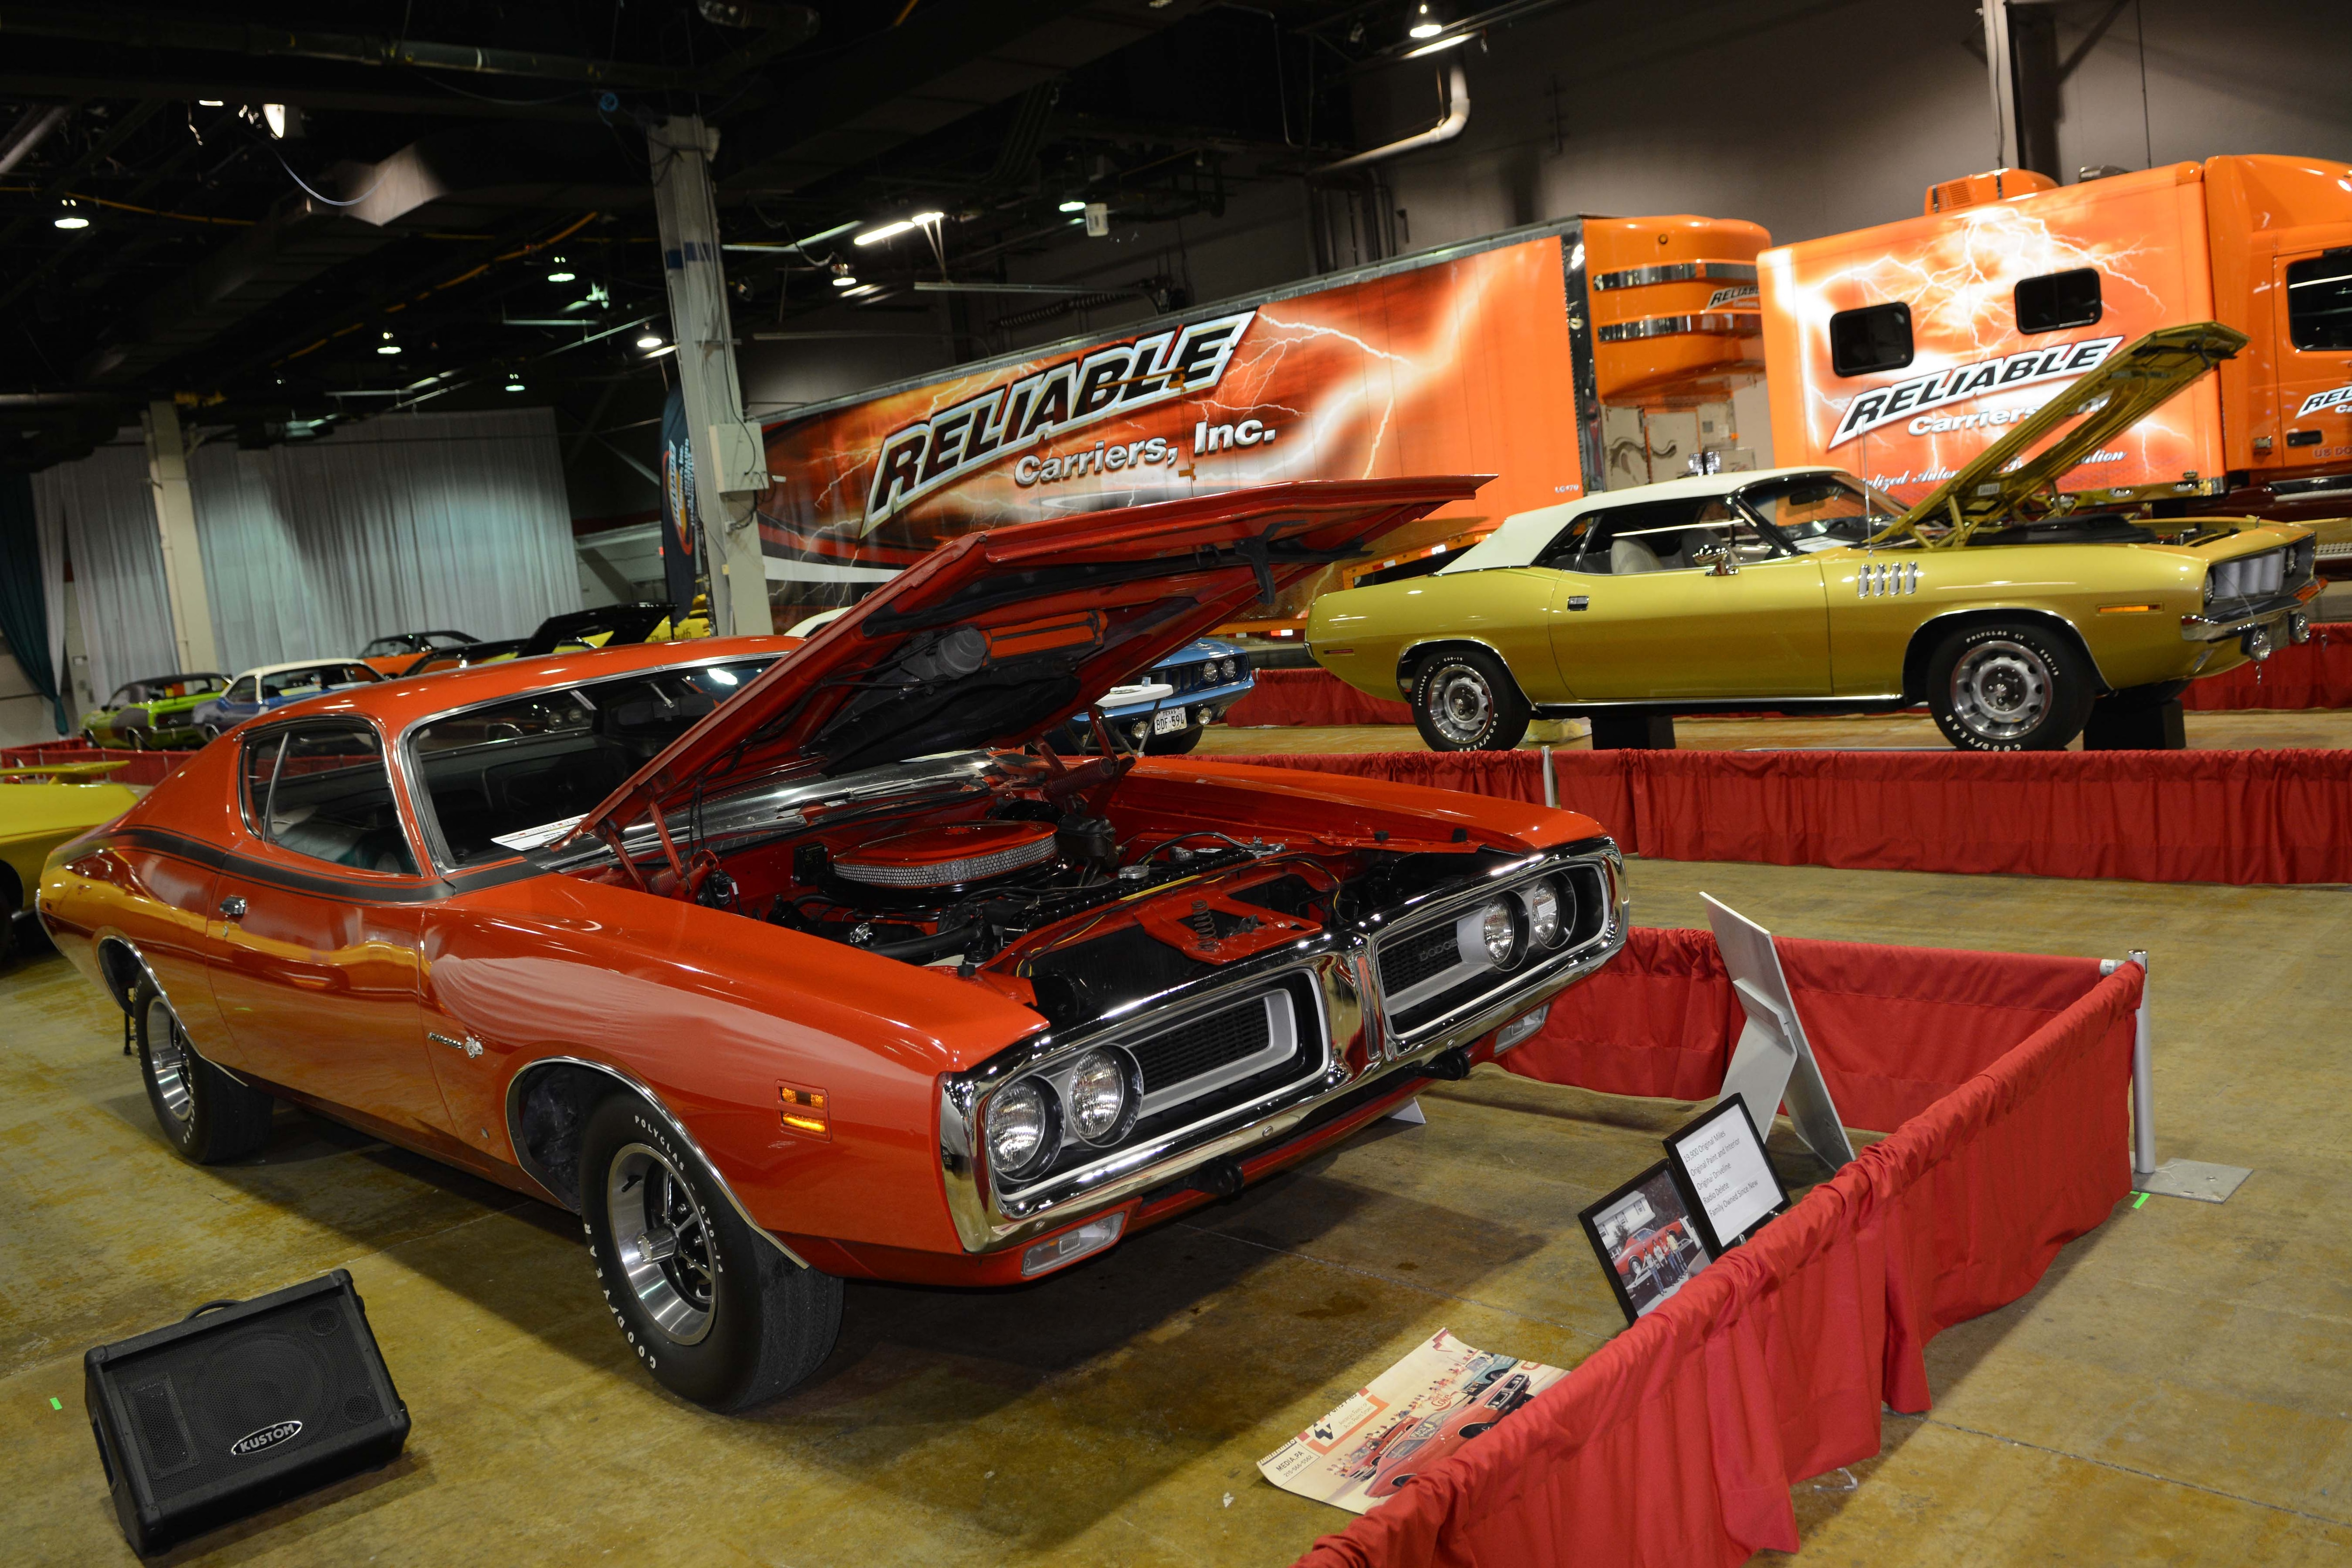 A couple of gems in the Class of 1971 display; Reliable and others brought in semi-loads of cars from around the country. For more info, go to www.mcacn.com